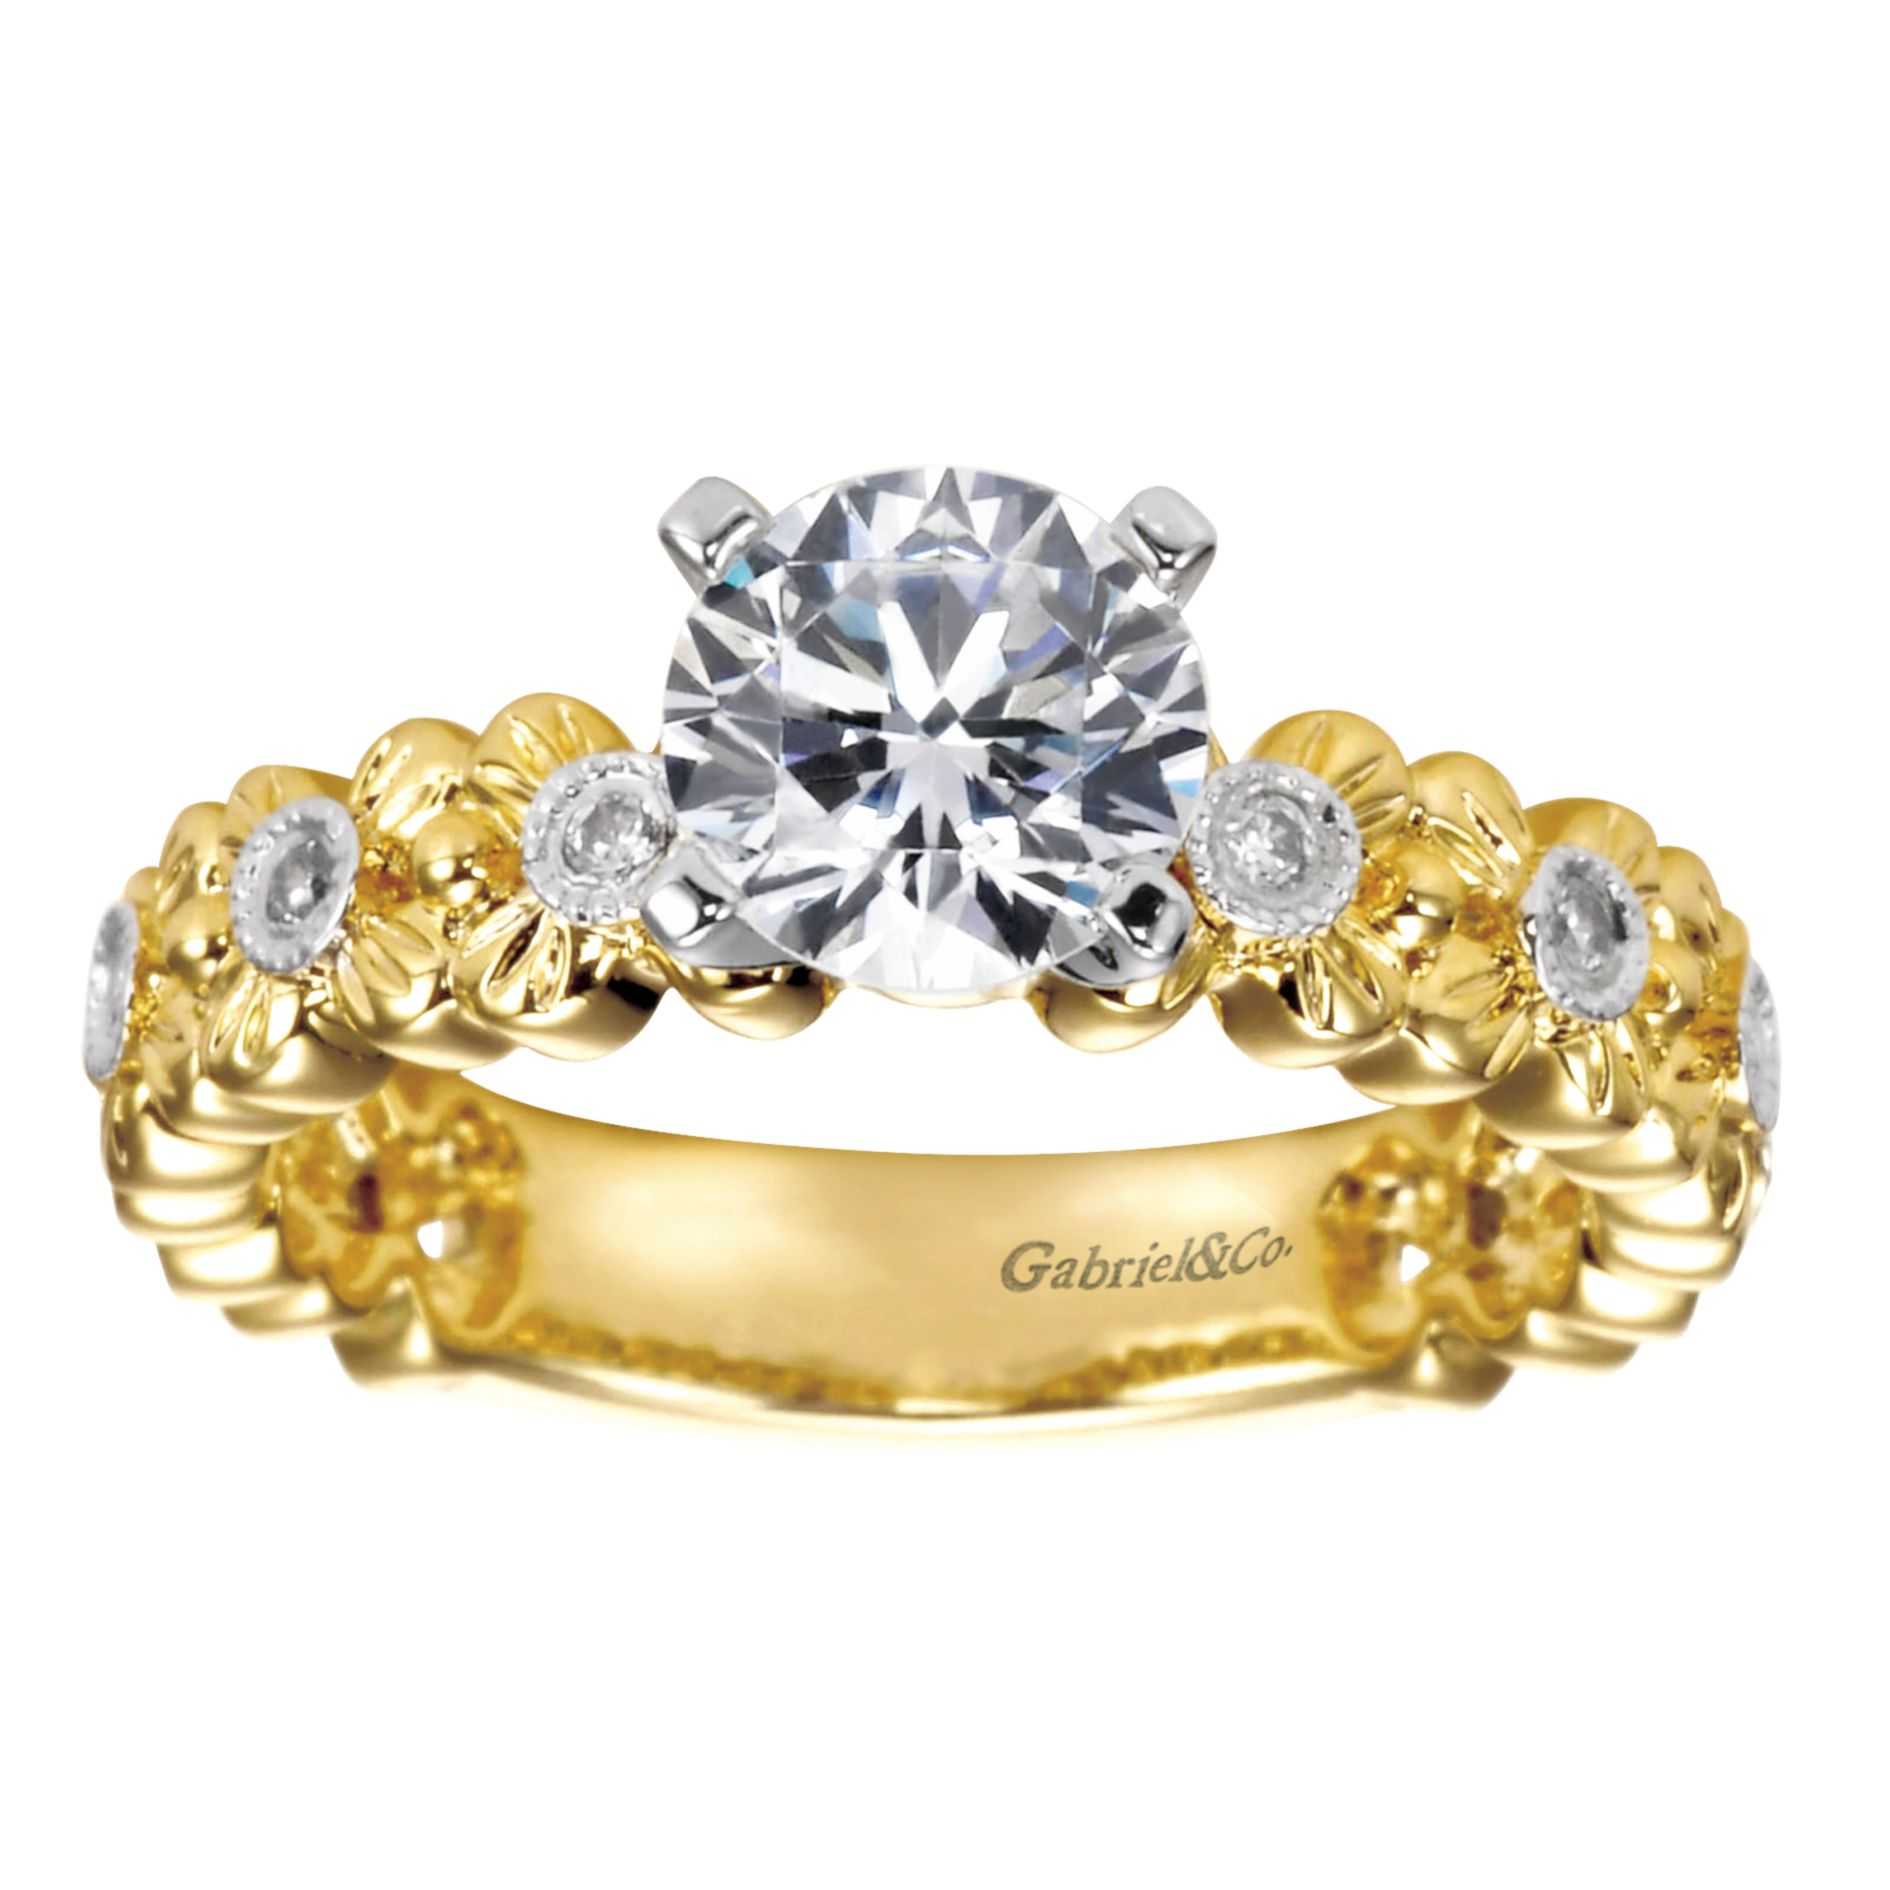 Engagement Rings - YELLOW GOLD ROUND STRAIGHT DIAMOND ENGAGEMENT RING - image #5